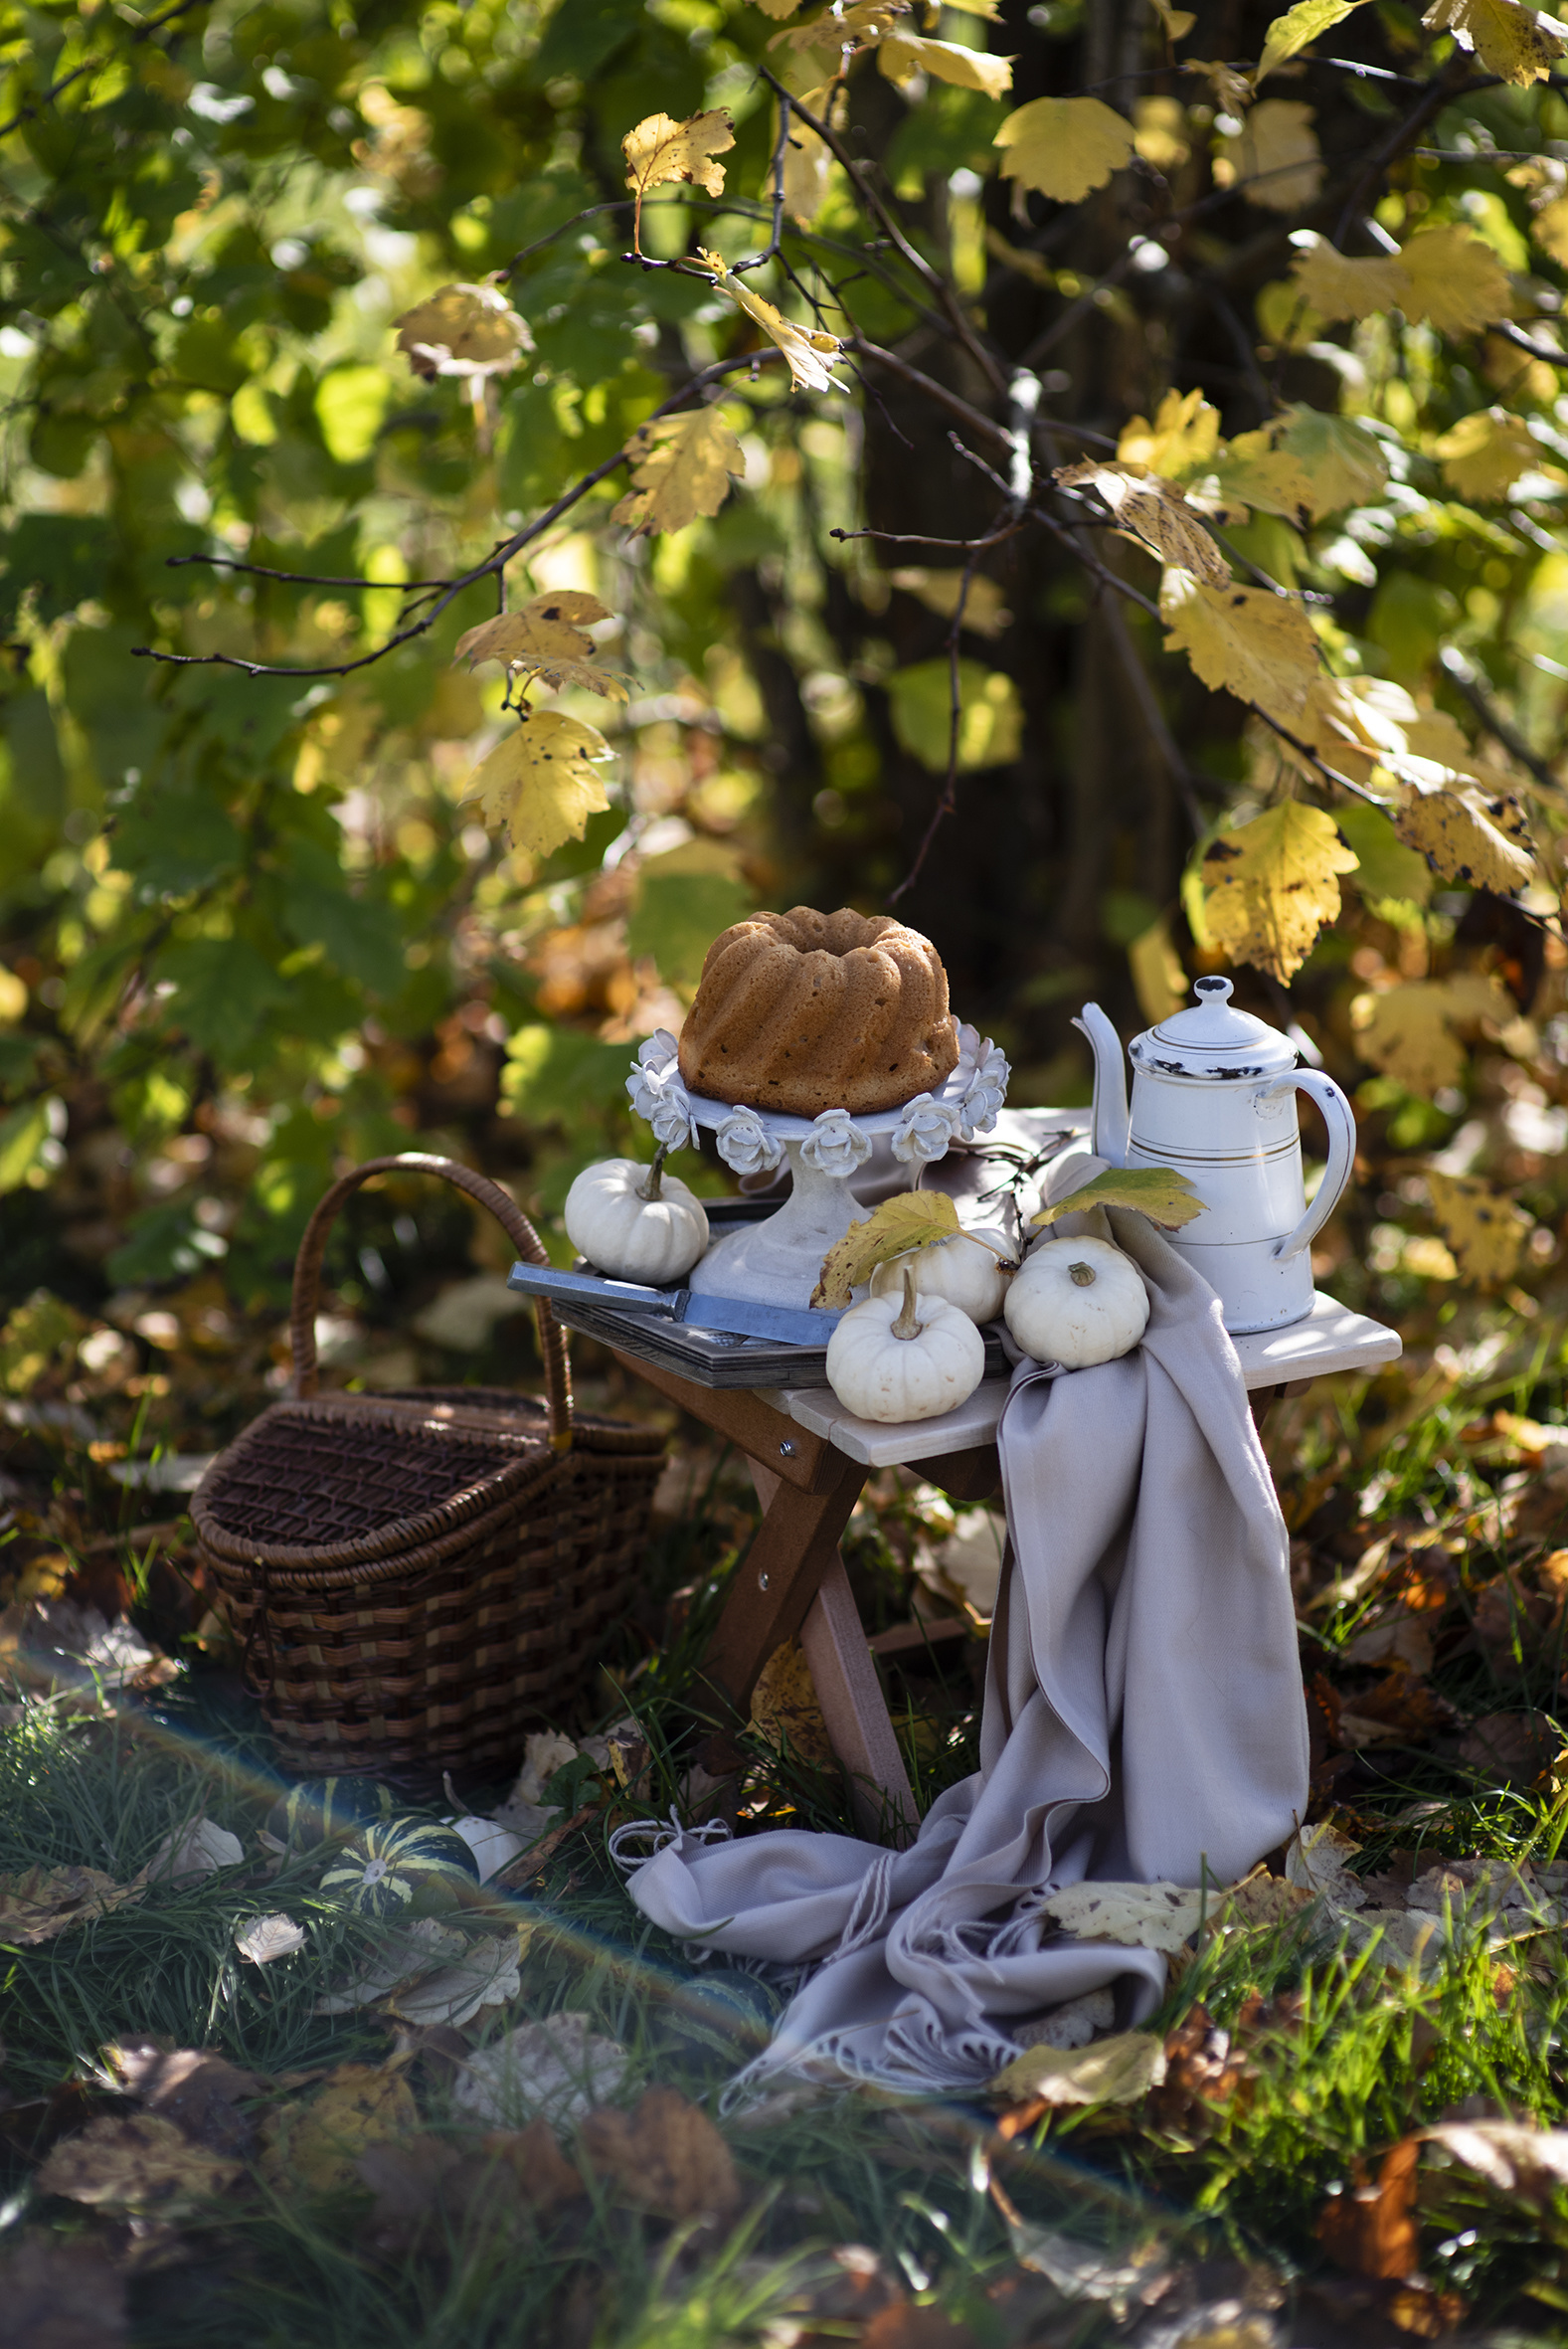 Picture Pumpkin Pound Cake Kettle Wicker basket Food  for Mobile phone